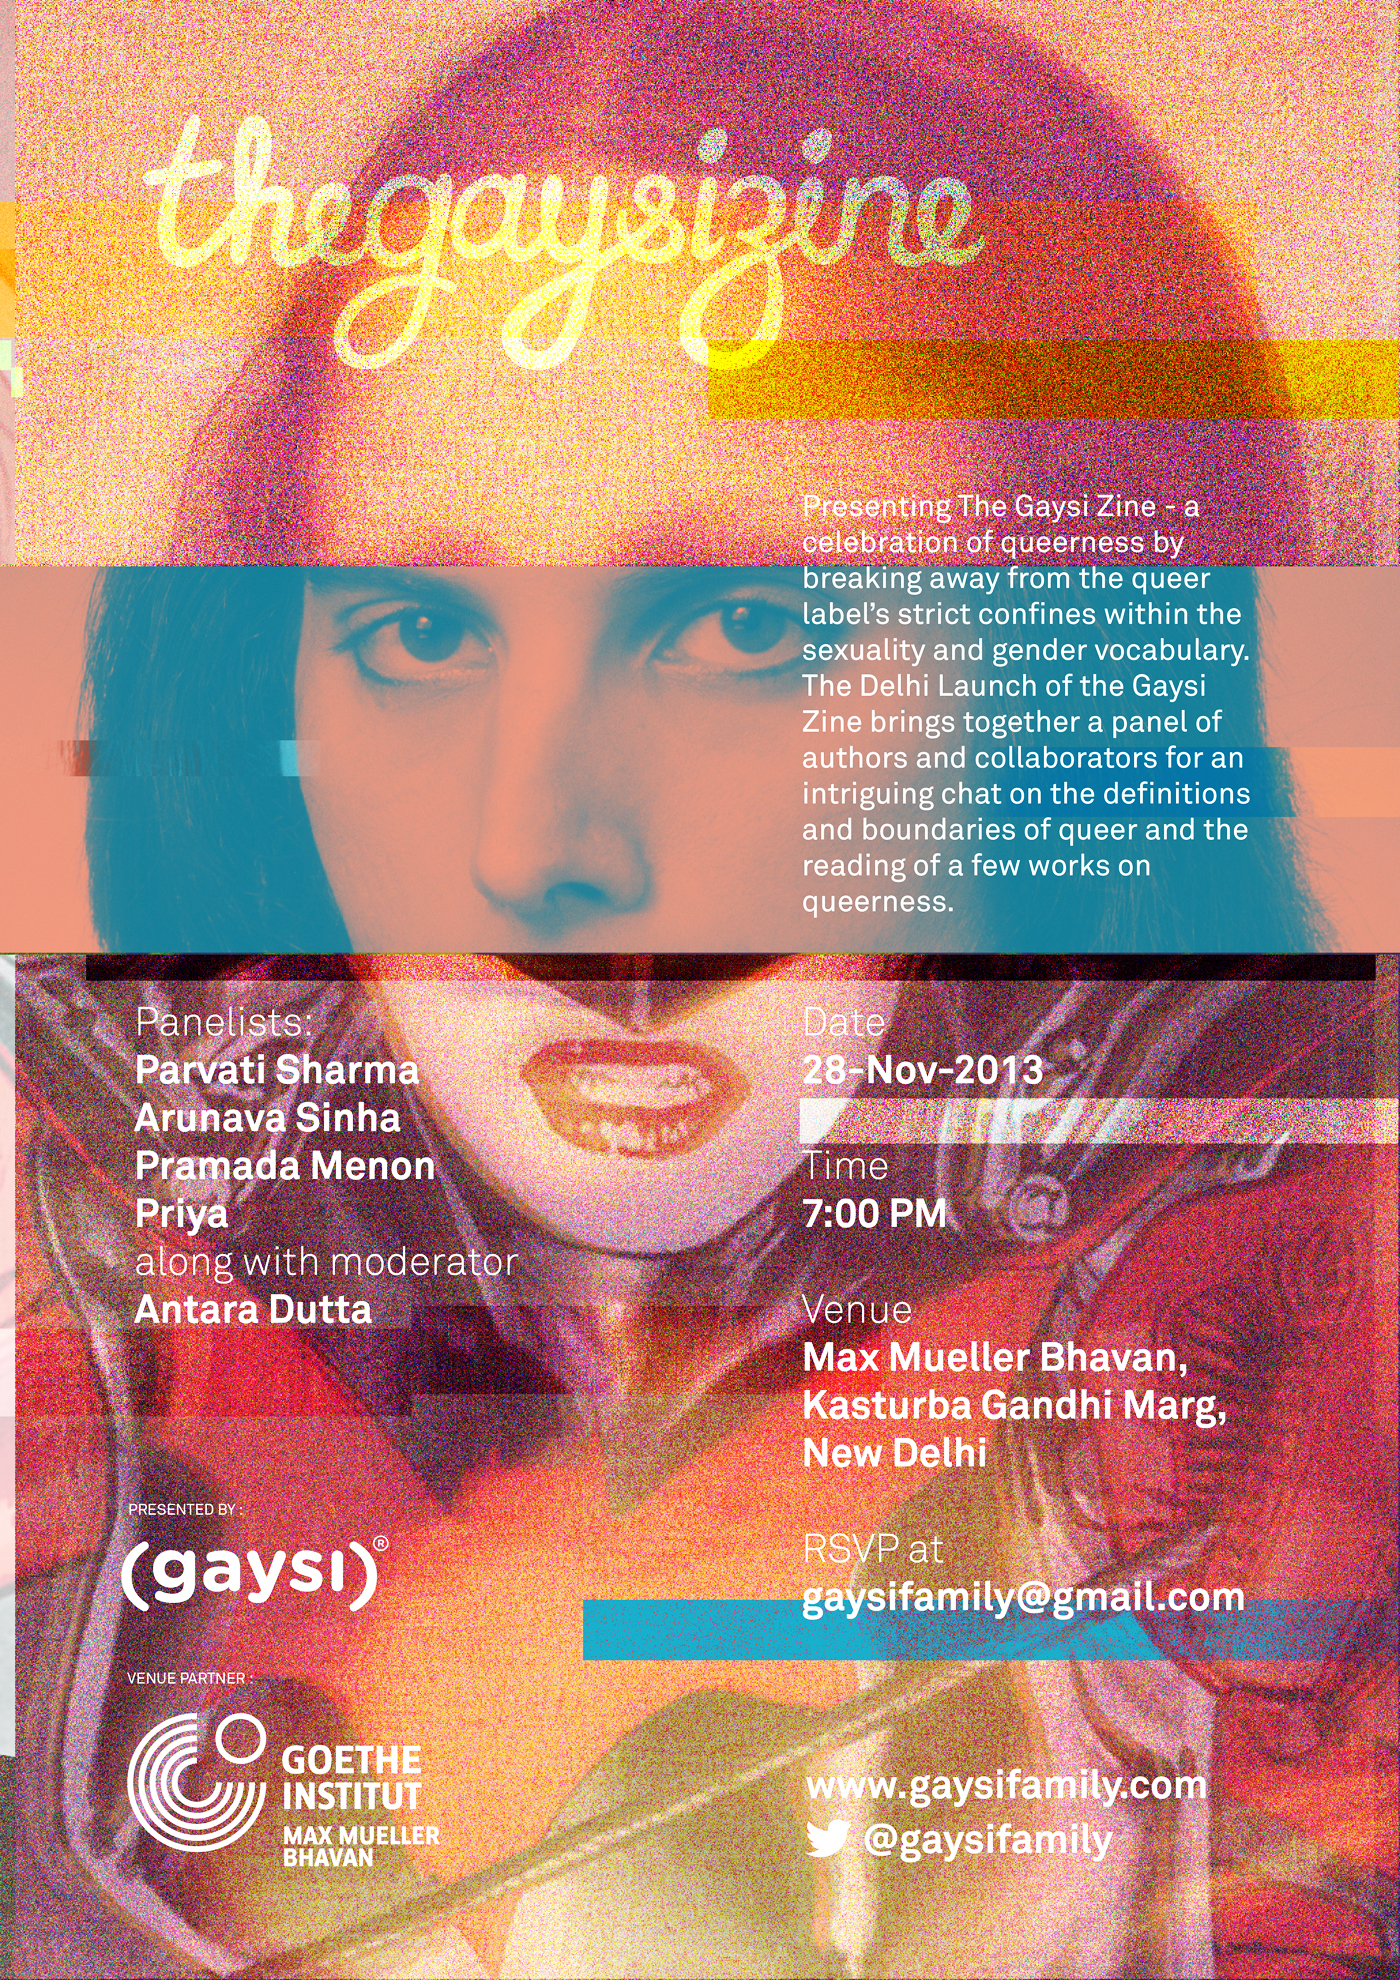 Launch of The Gaysi Zine in New Delhi on 28th Nov, 2013